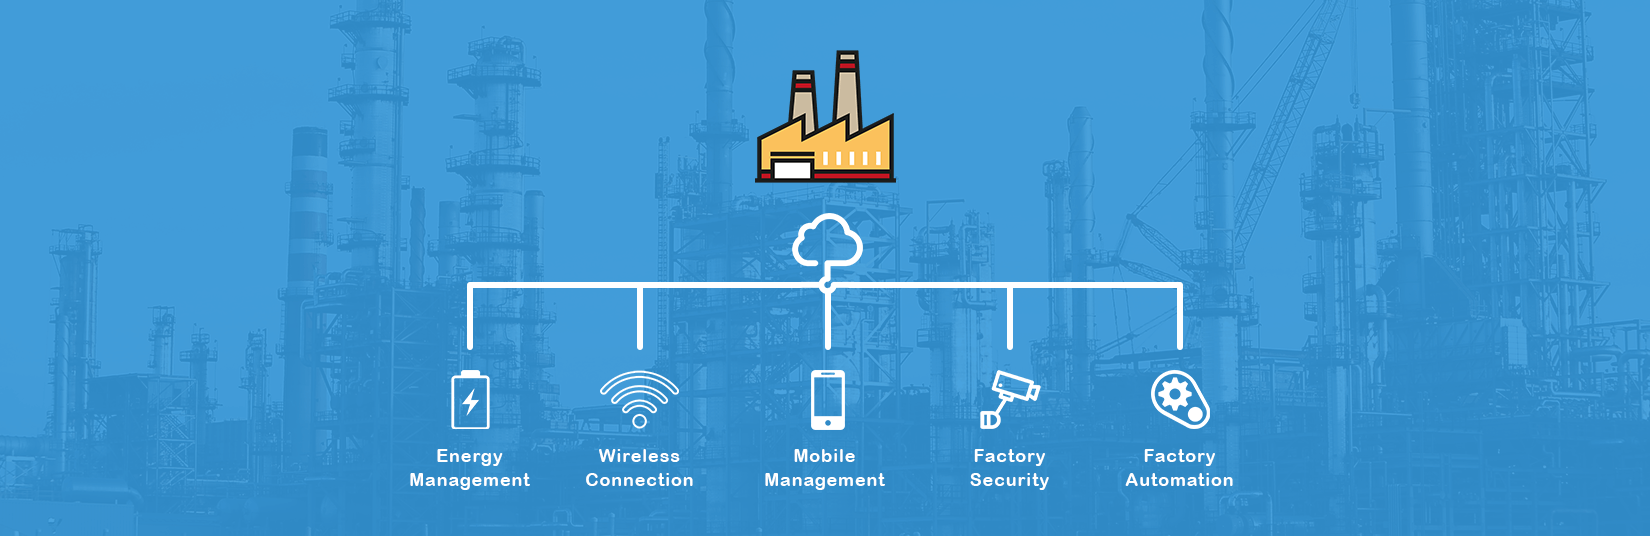 Connected Factories : The Changing Face of Manufacturing Industry